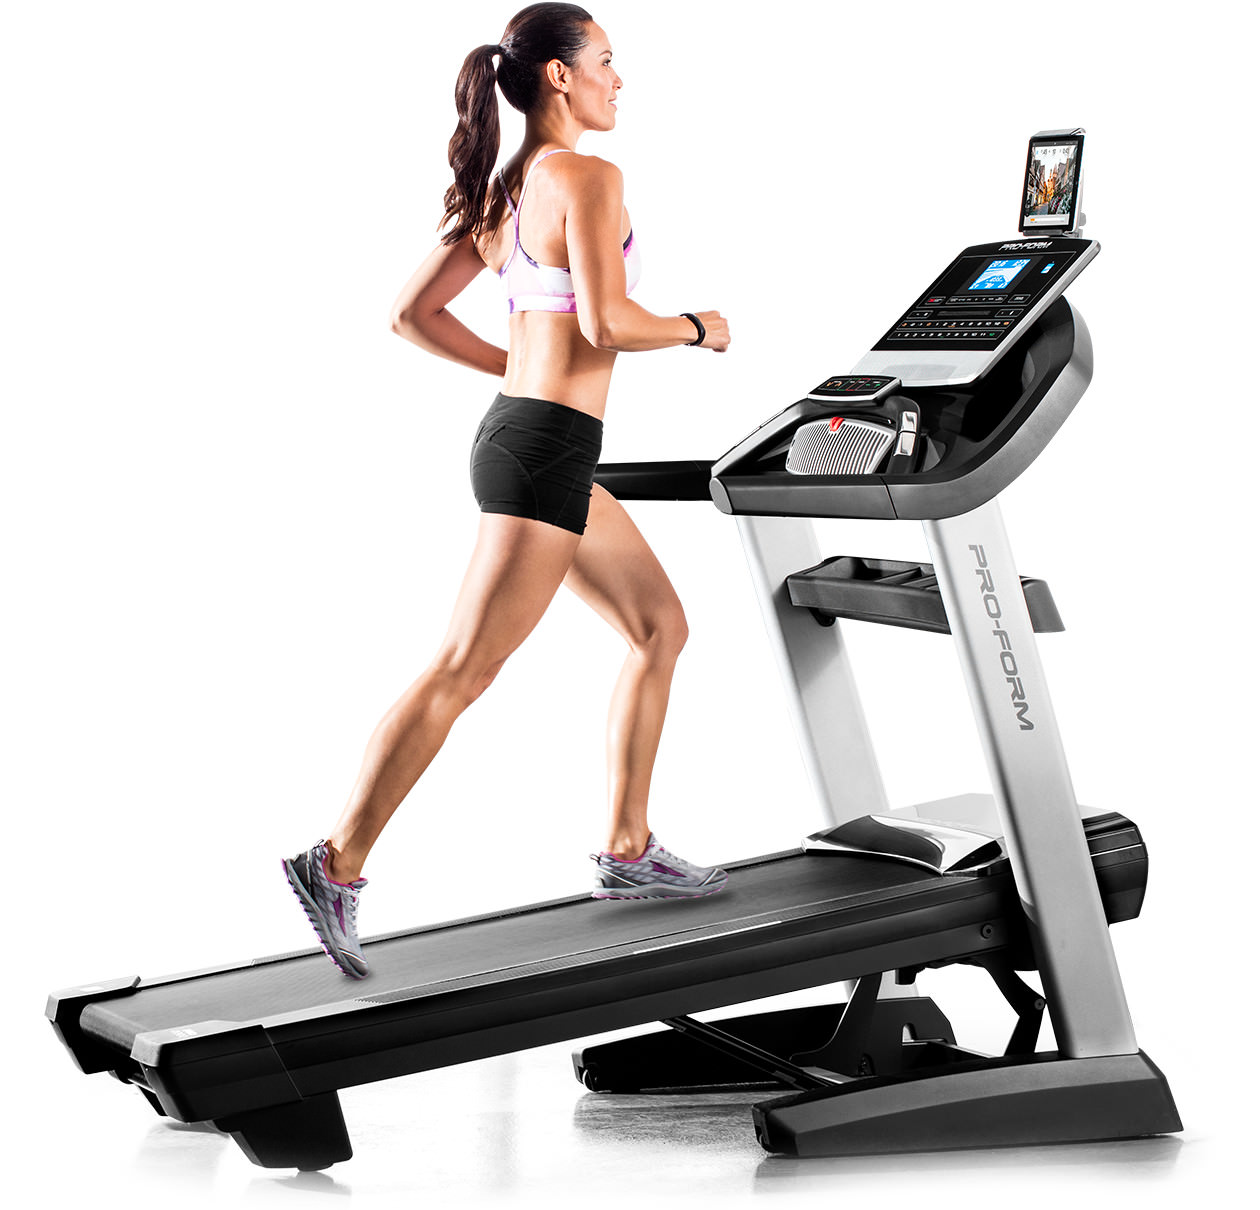 Best Treadmills For Home >> Proform 2000 vs 5000 Treadmill Comparison - Which is Best ...